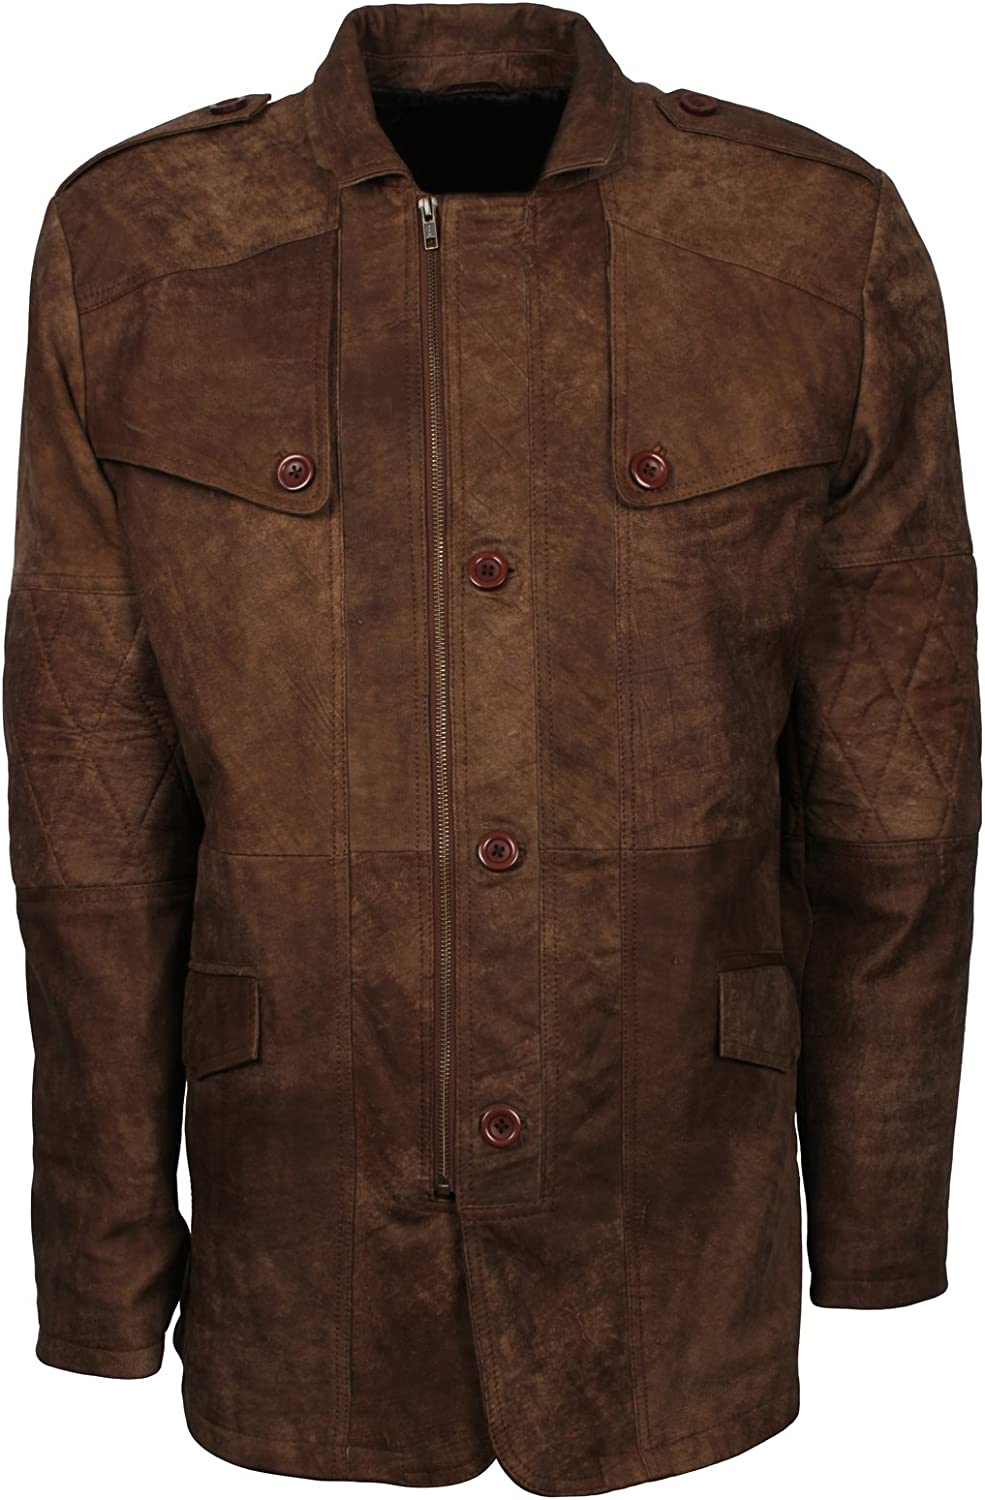 Brown Mens Distressed Long Coat Style Genuine Leather Classic Jacket